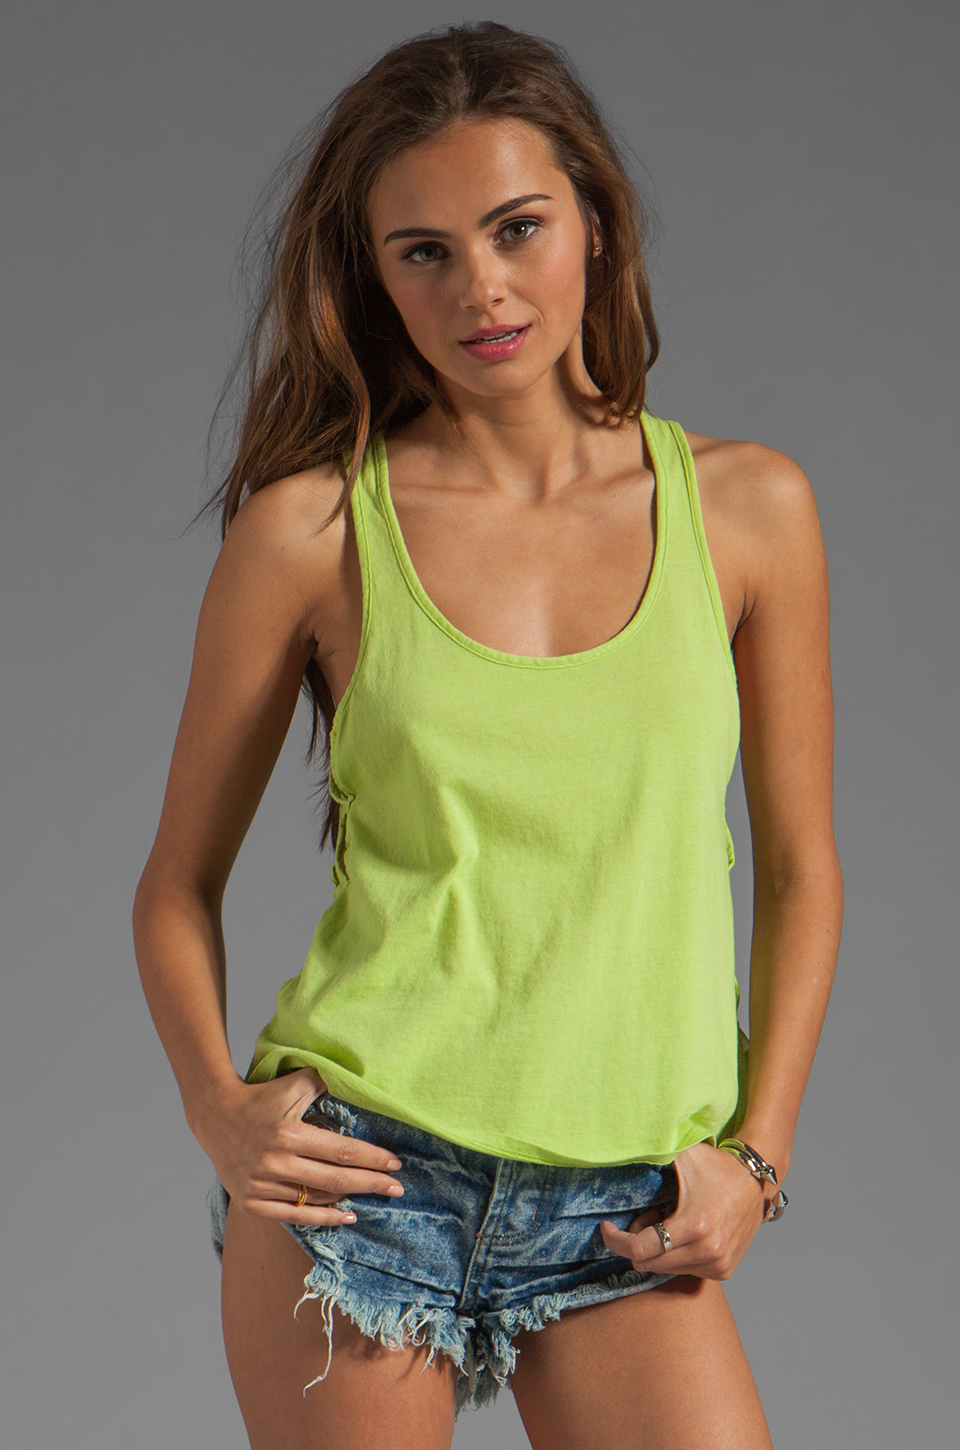 Bobi Lightweight Jersey Criss Cross Side Tank in Margarita